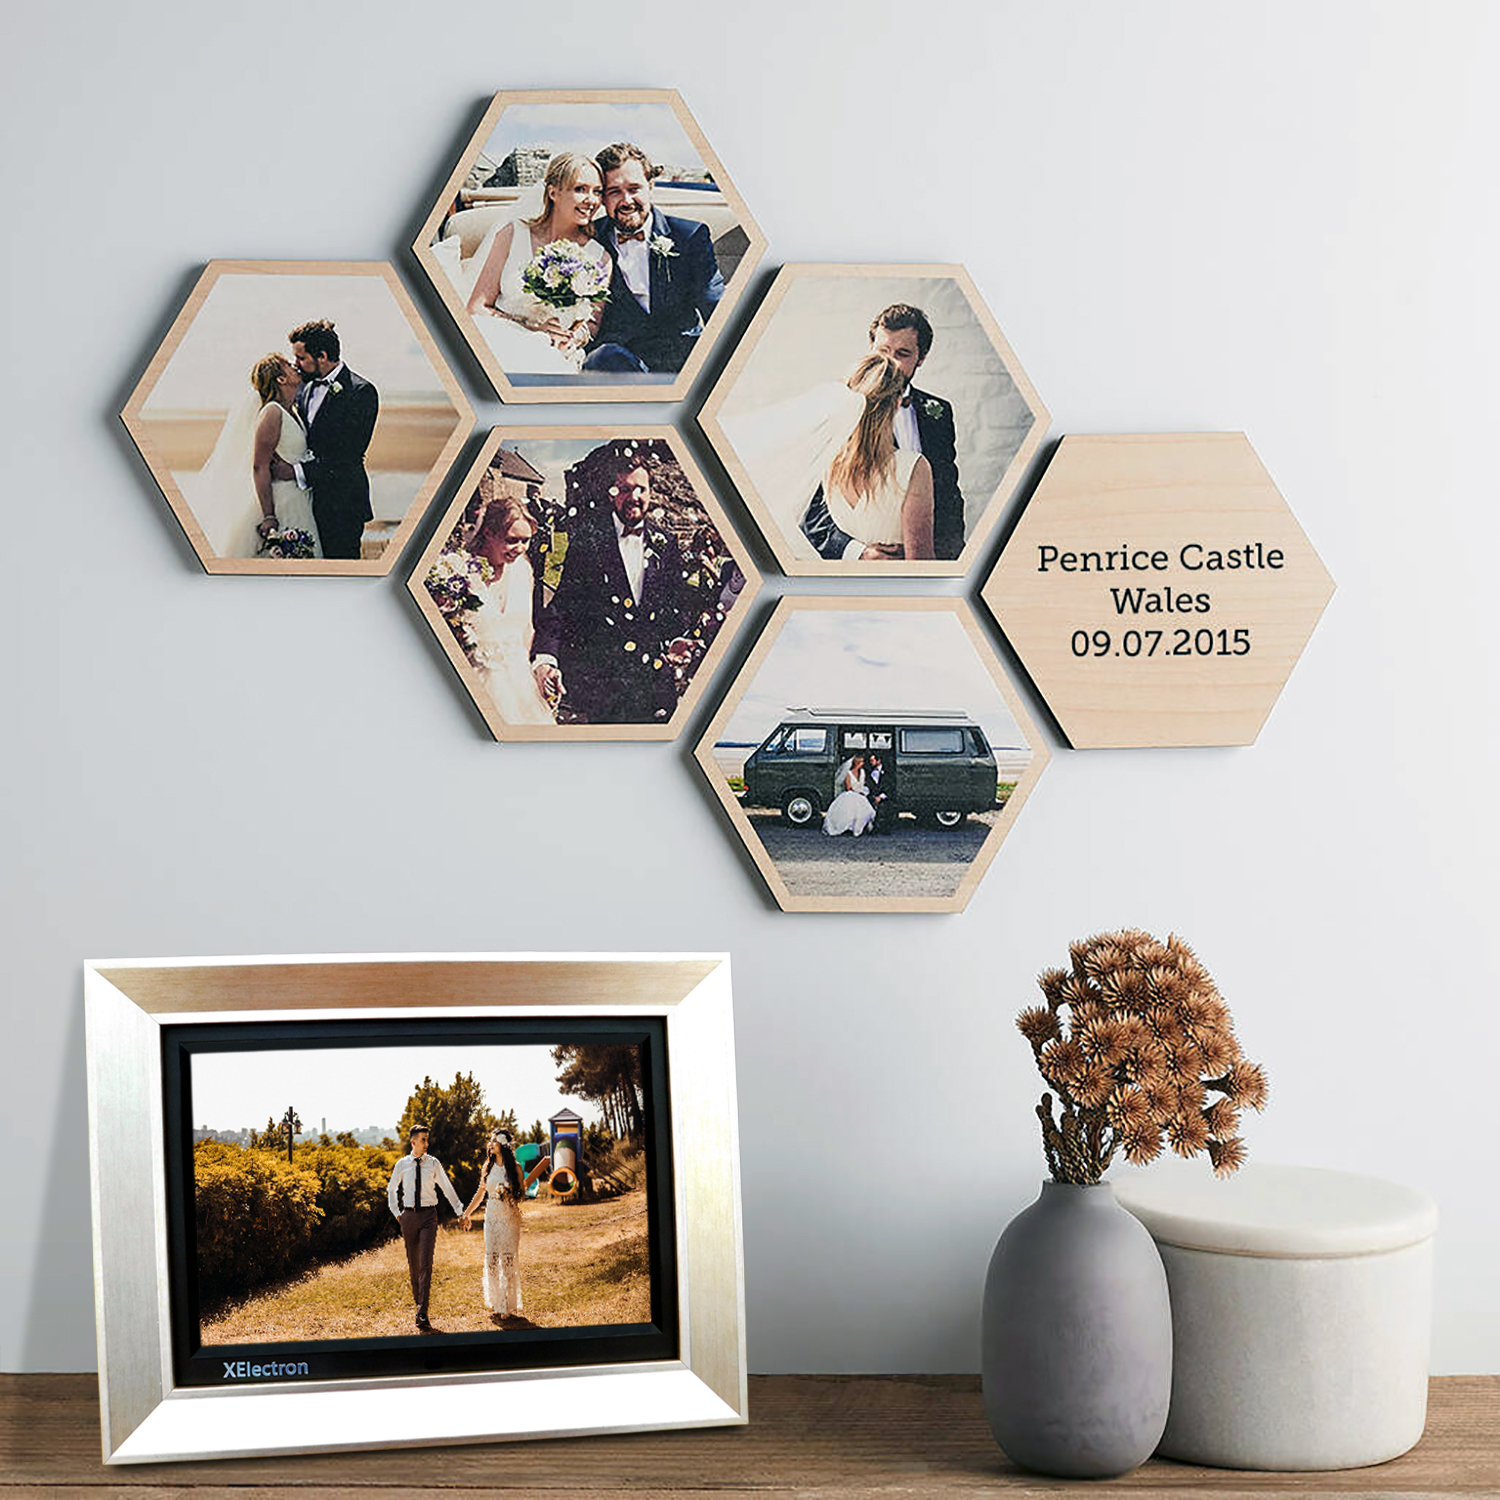 12 Inch IPS Digital Photo Frame/Video Frame with 1920x1080, 1080P Resolution, Plays Images, Video & Music